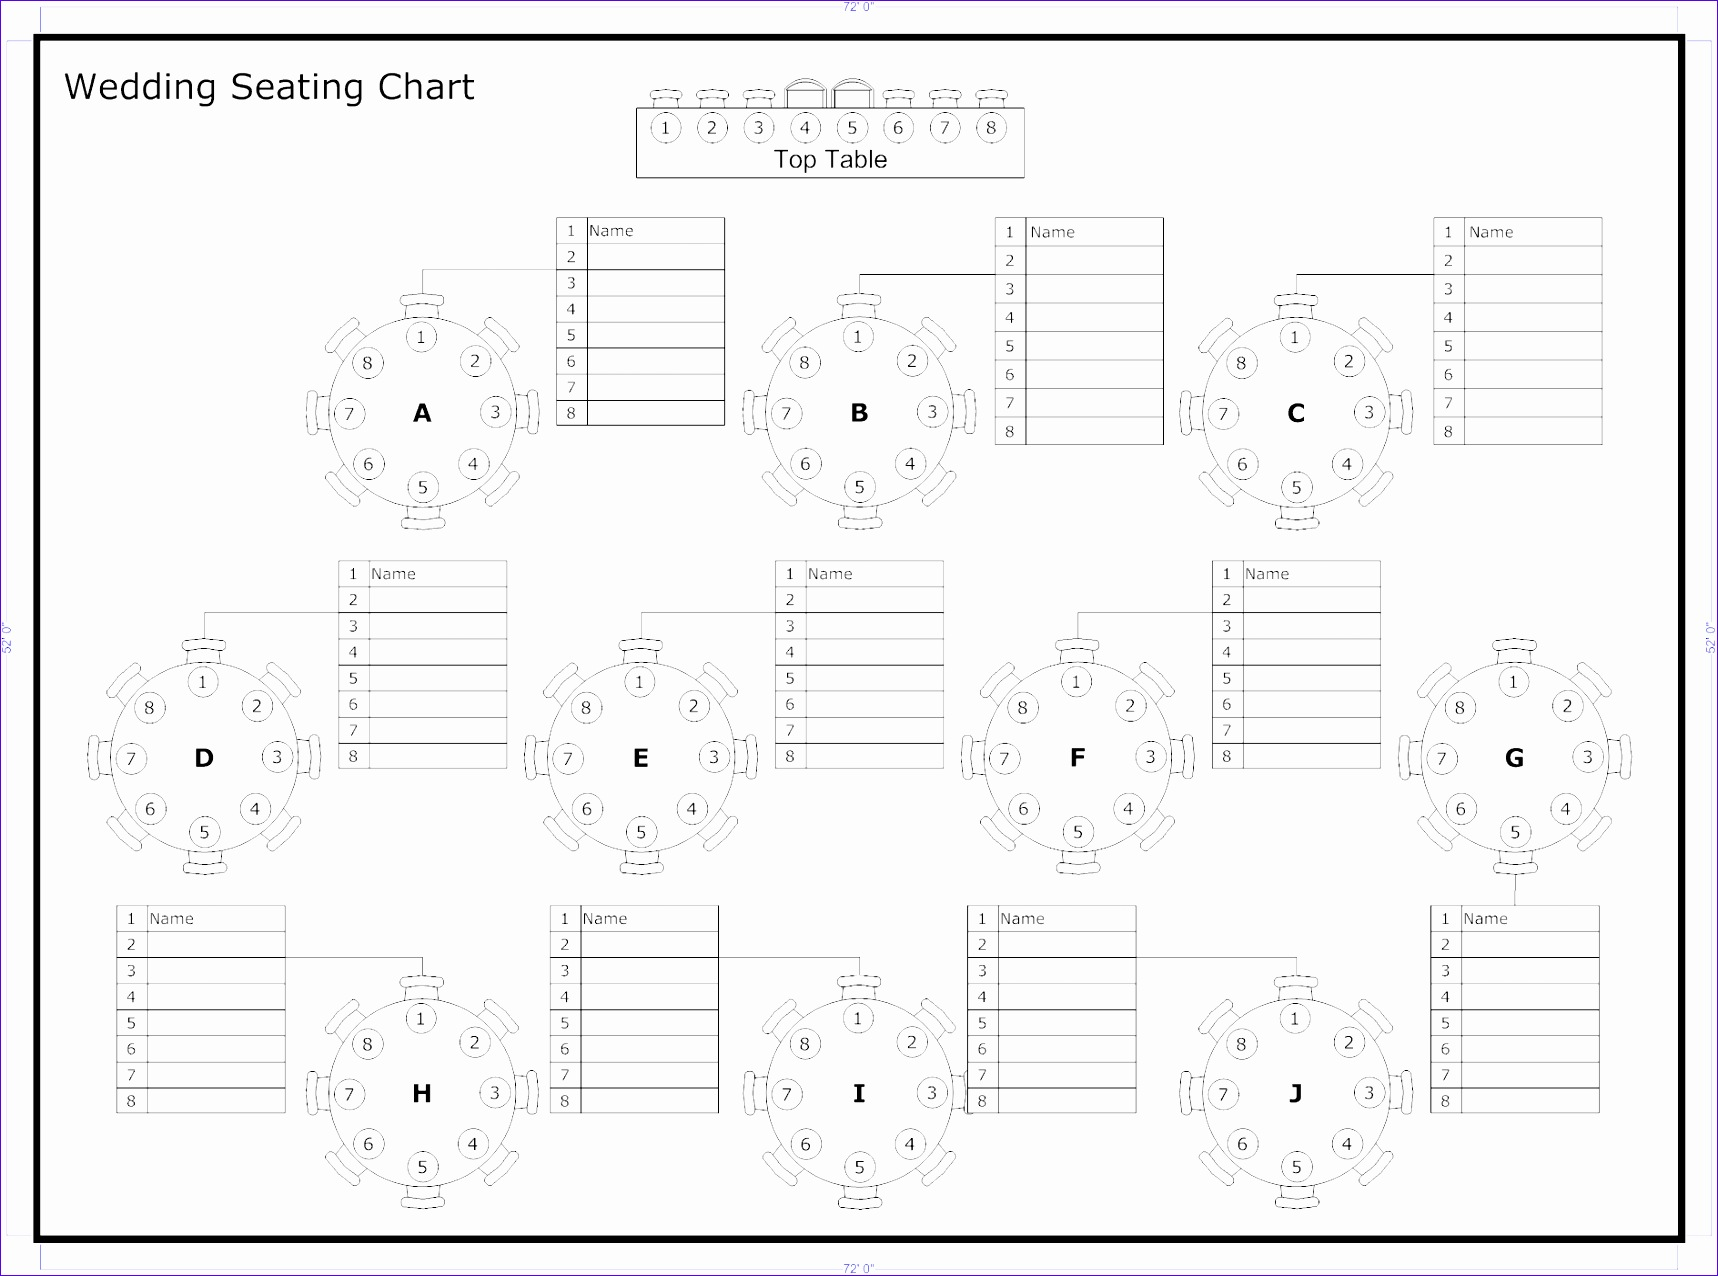 10 Wedding Seating Plan Template Excel